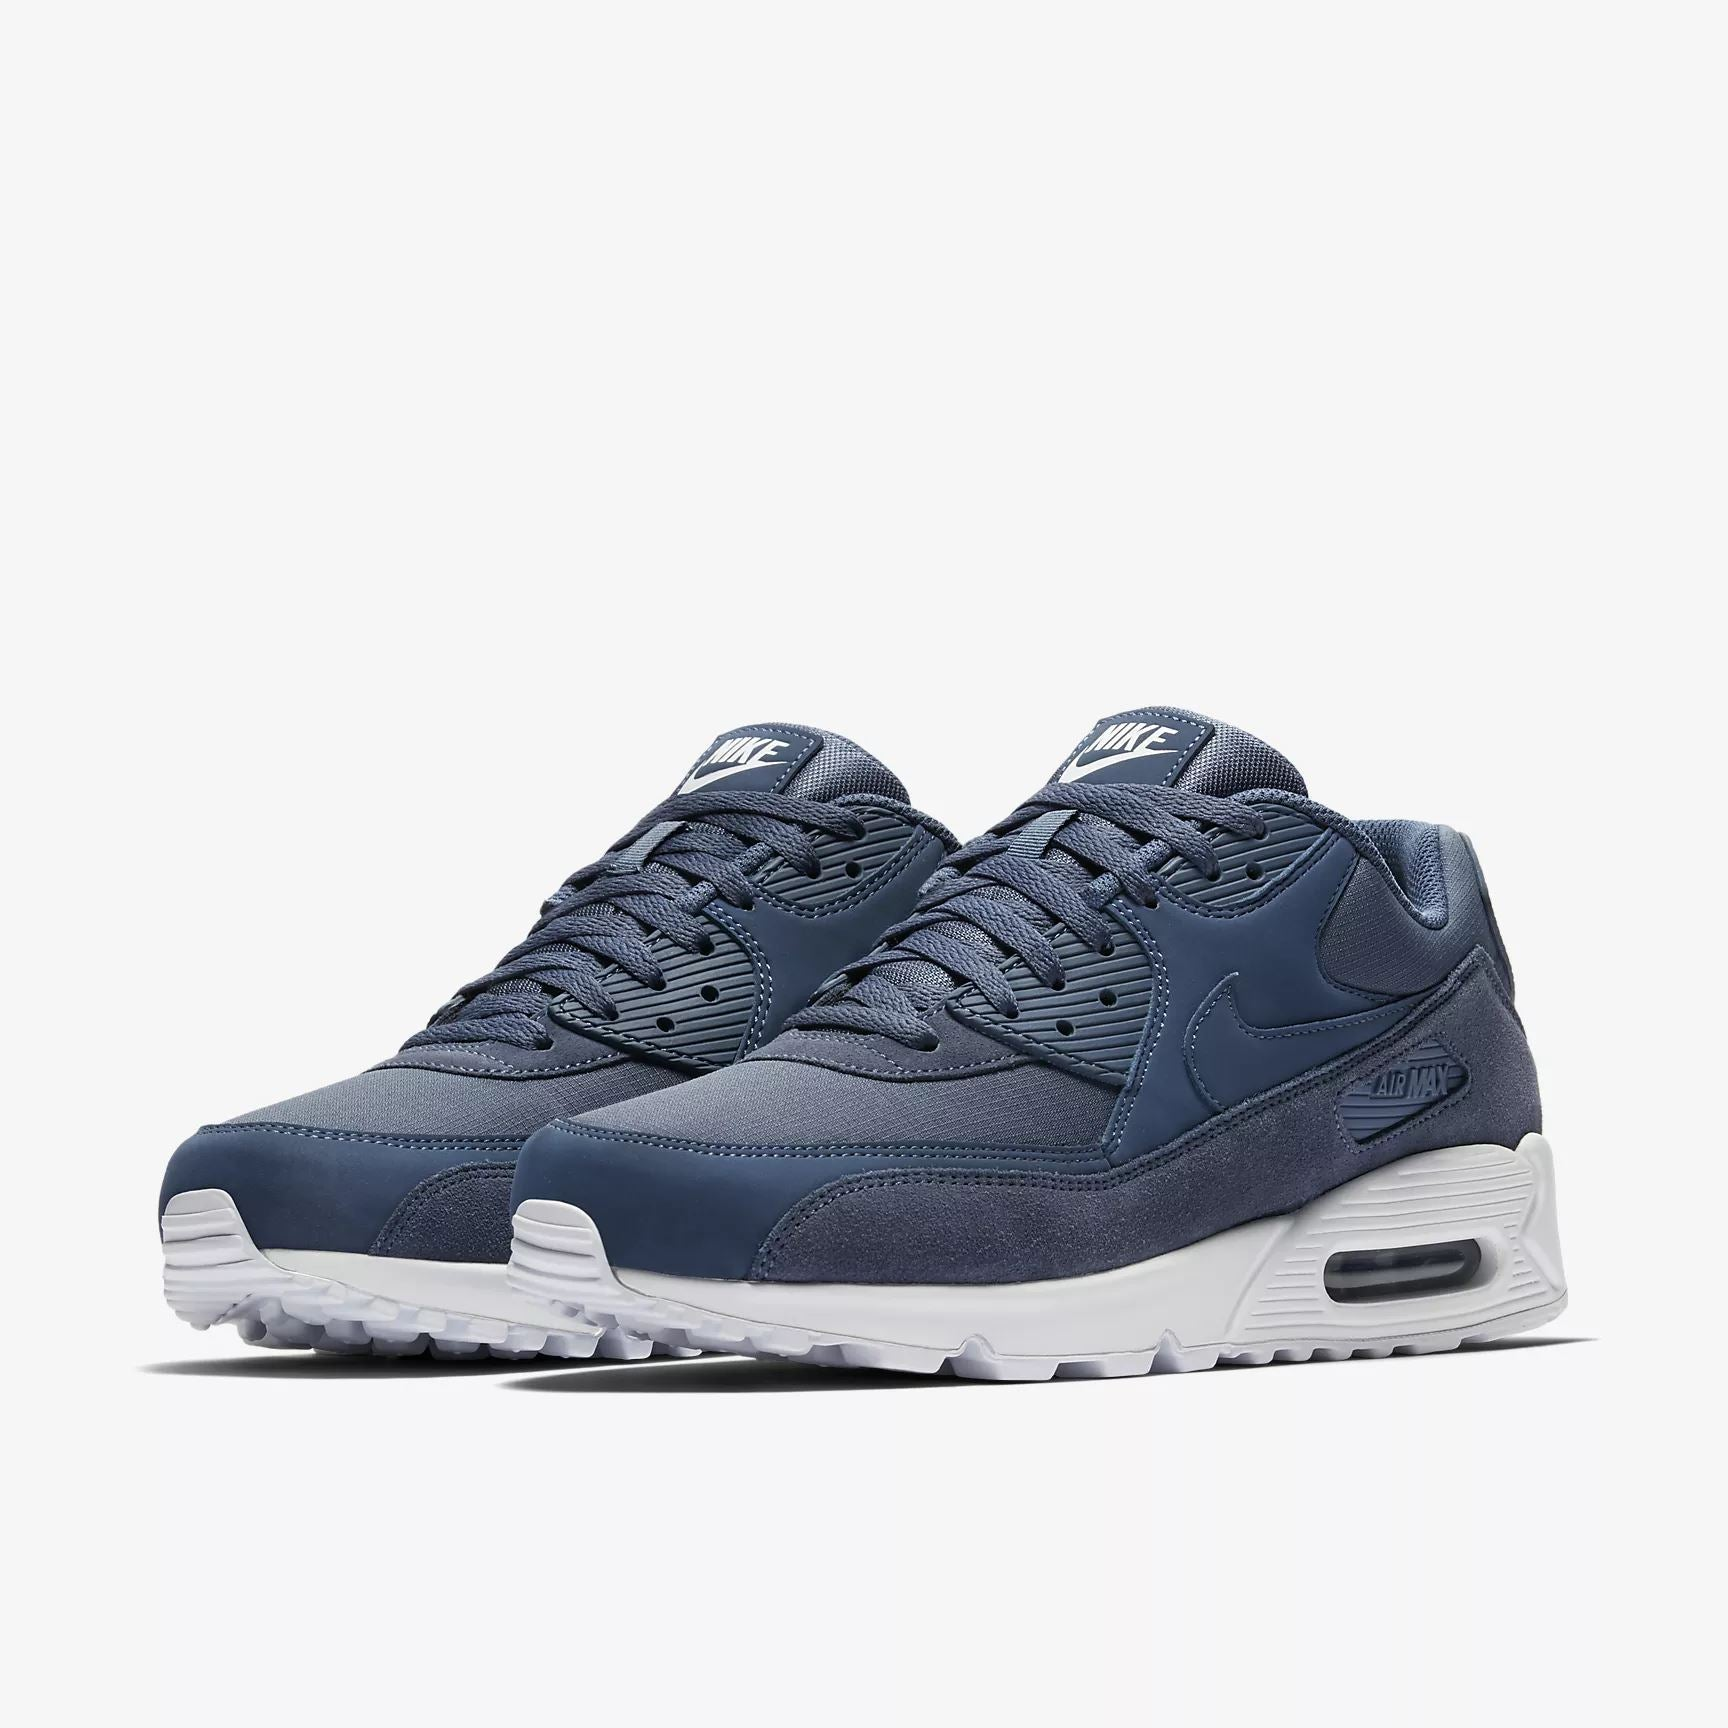 Nike Air Max 90 Essential AJ1285 400 Diffused Blue